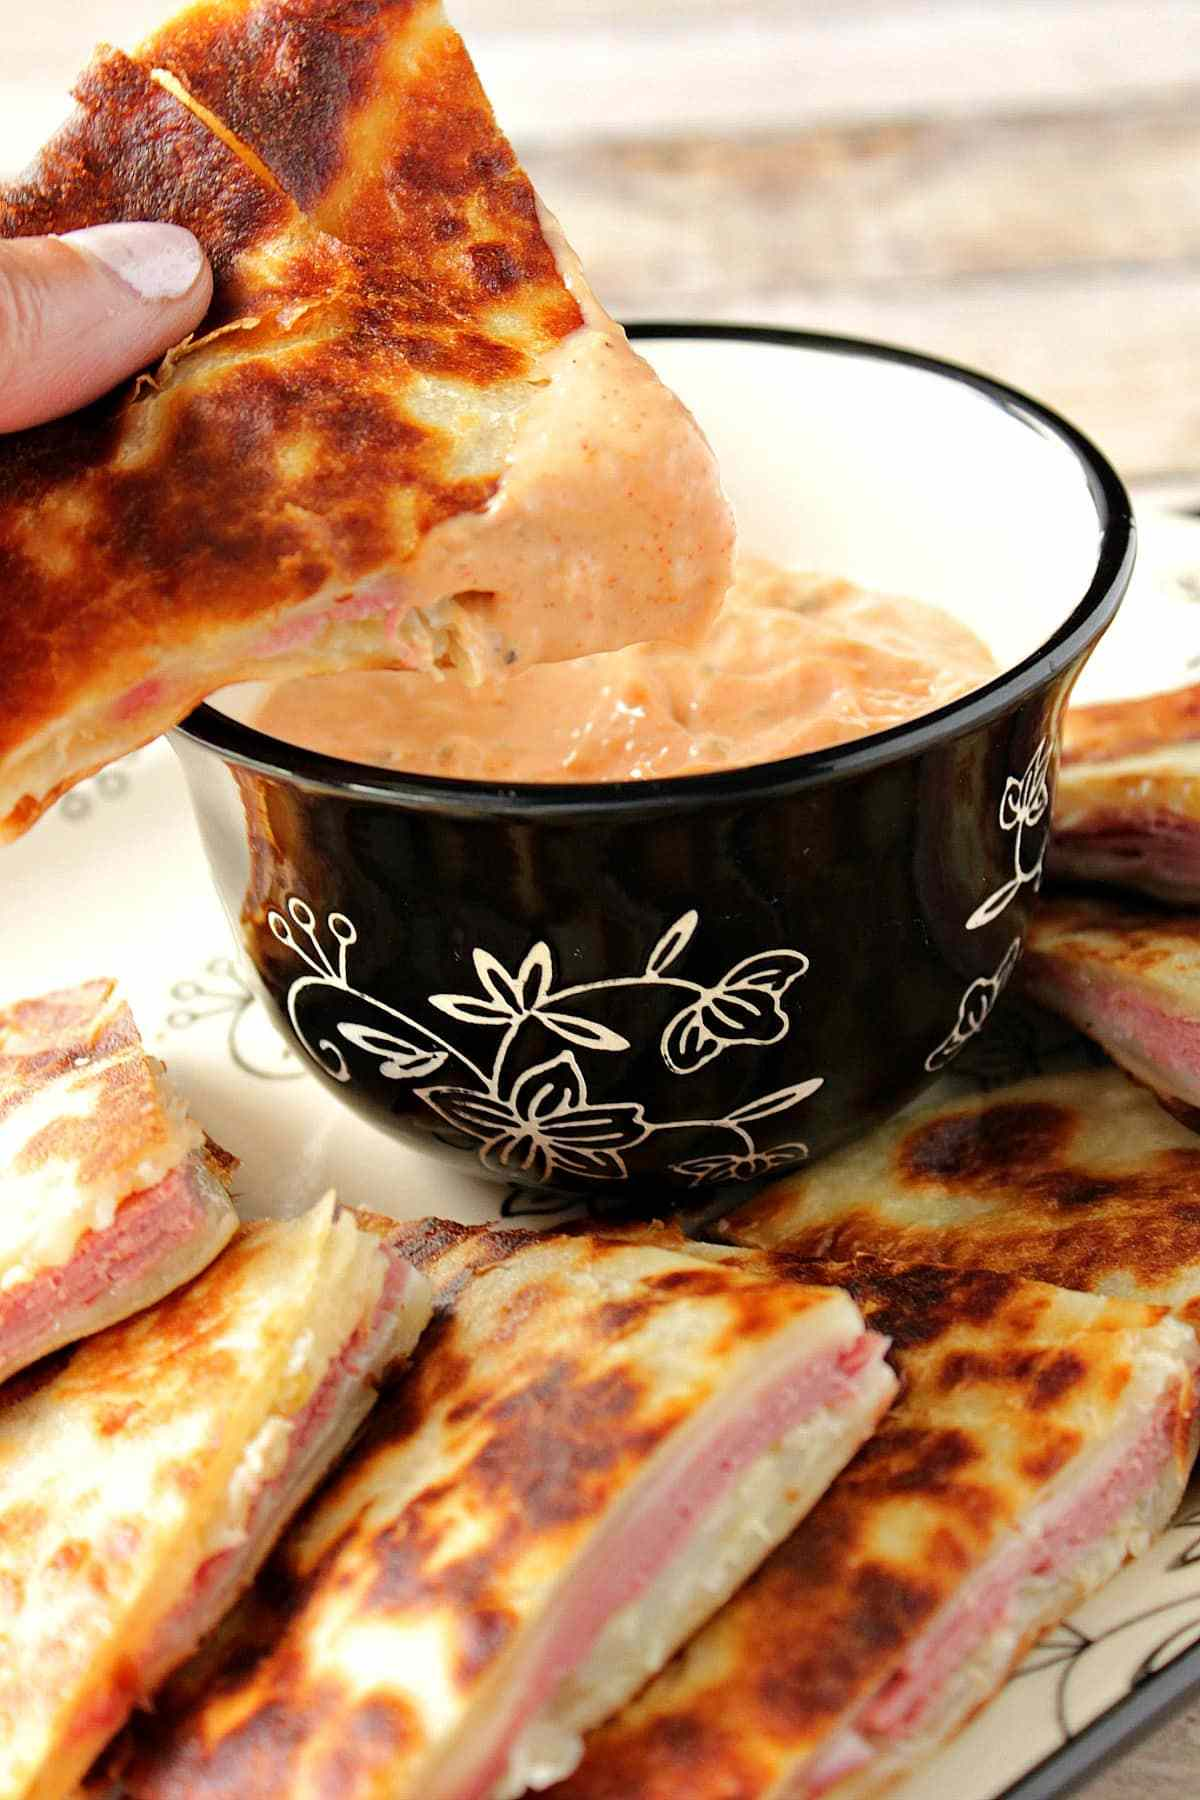 Reuben quesadilla triangles on a serving platter with a bowl of dipping sauce